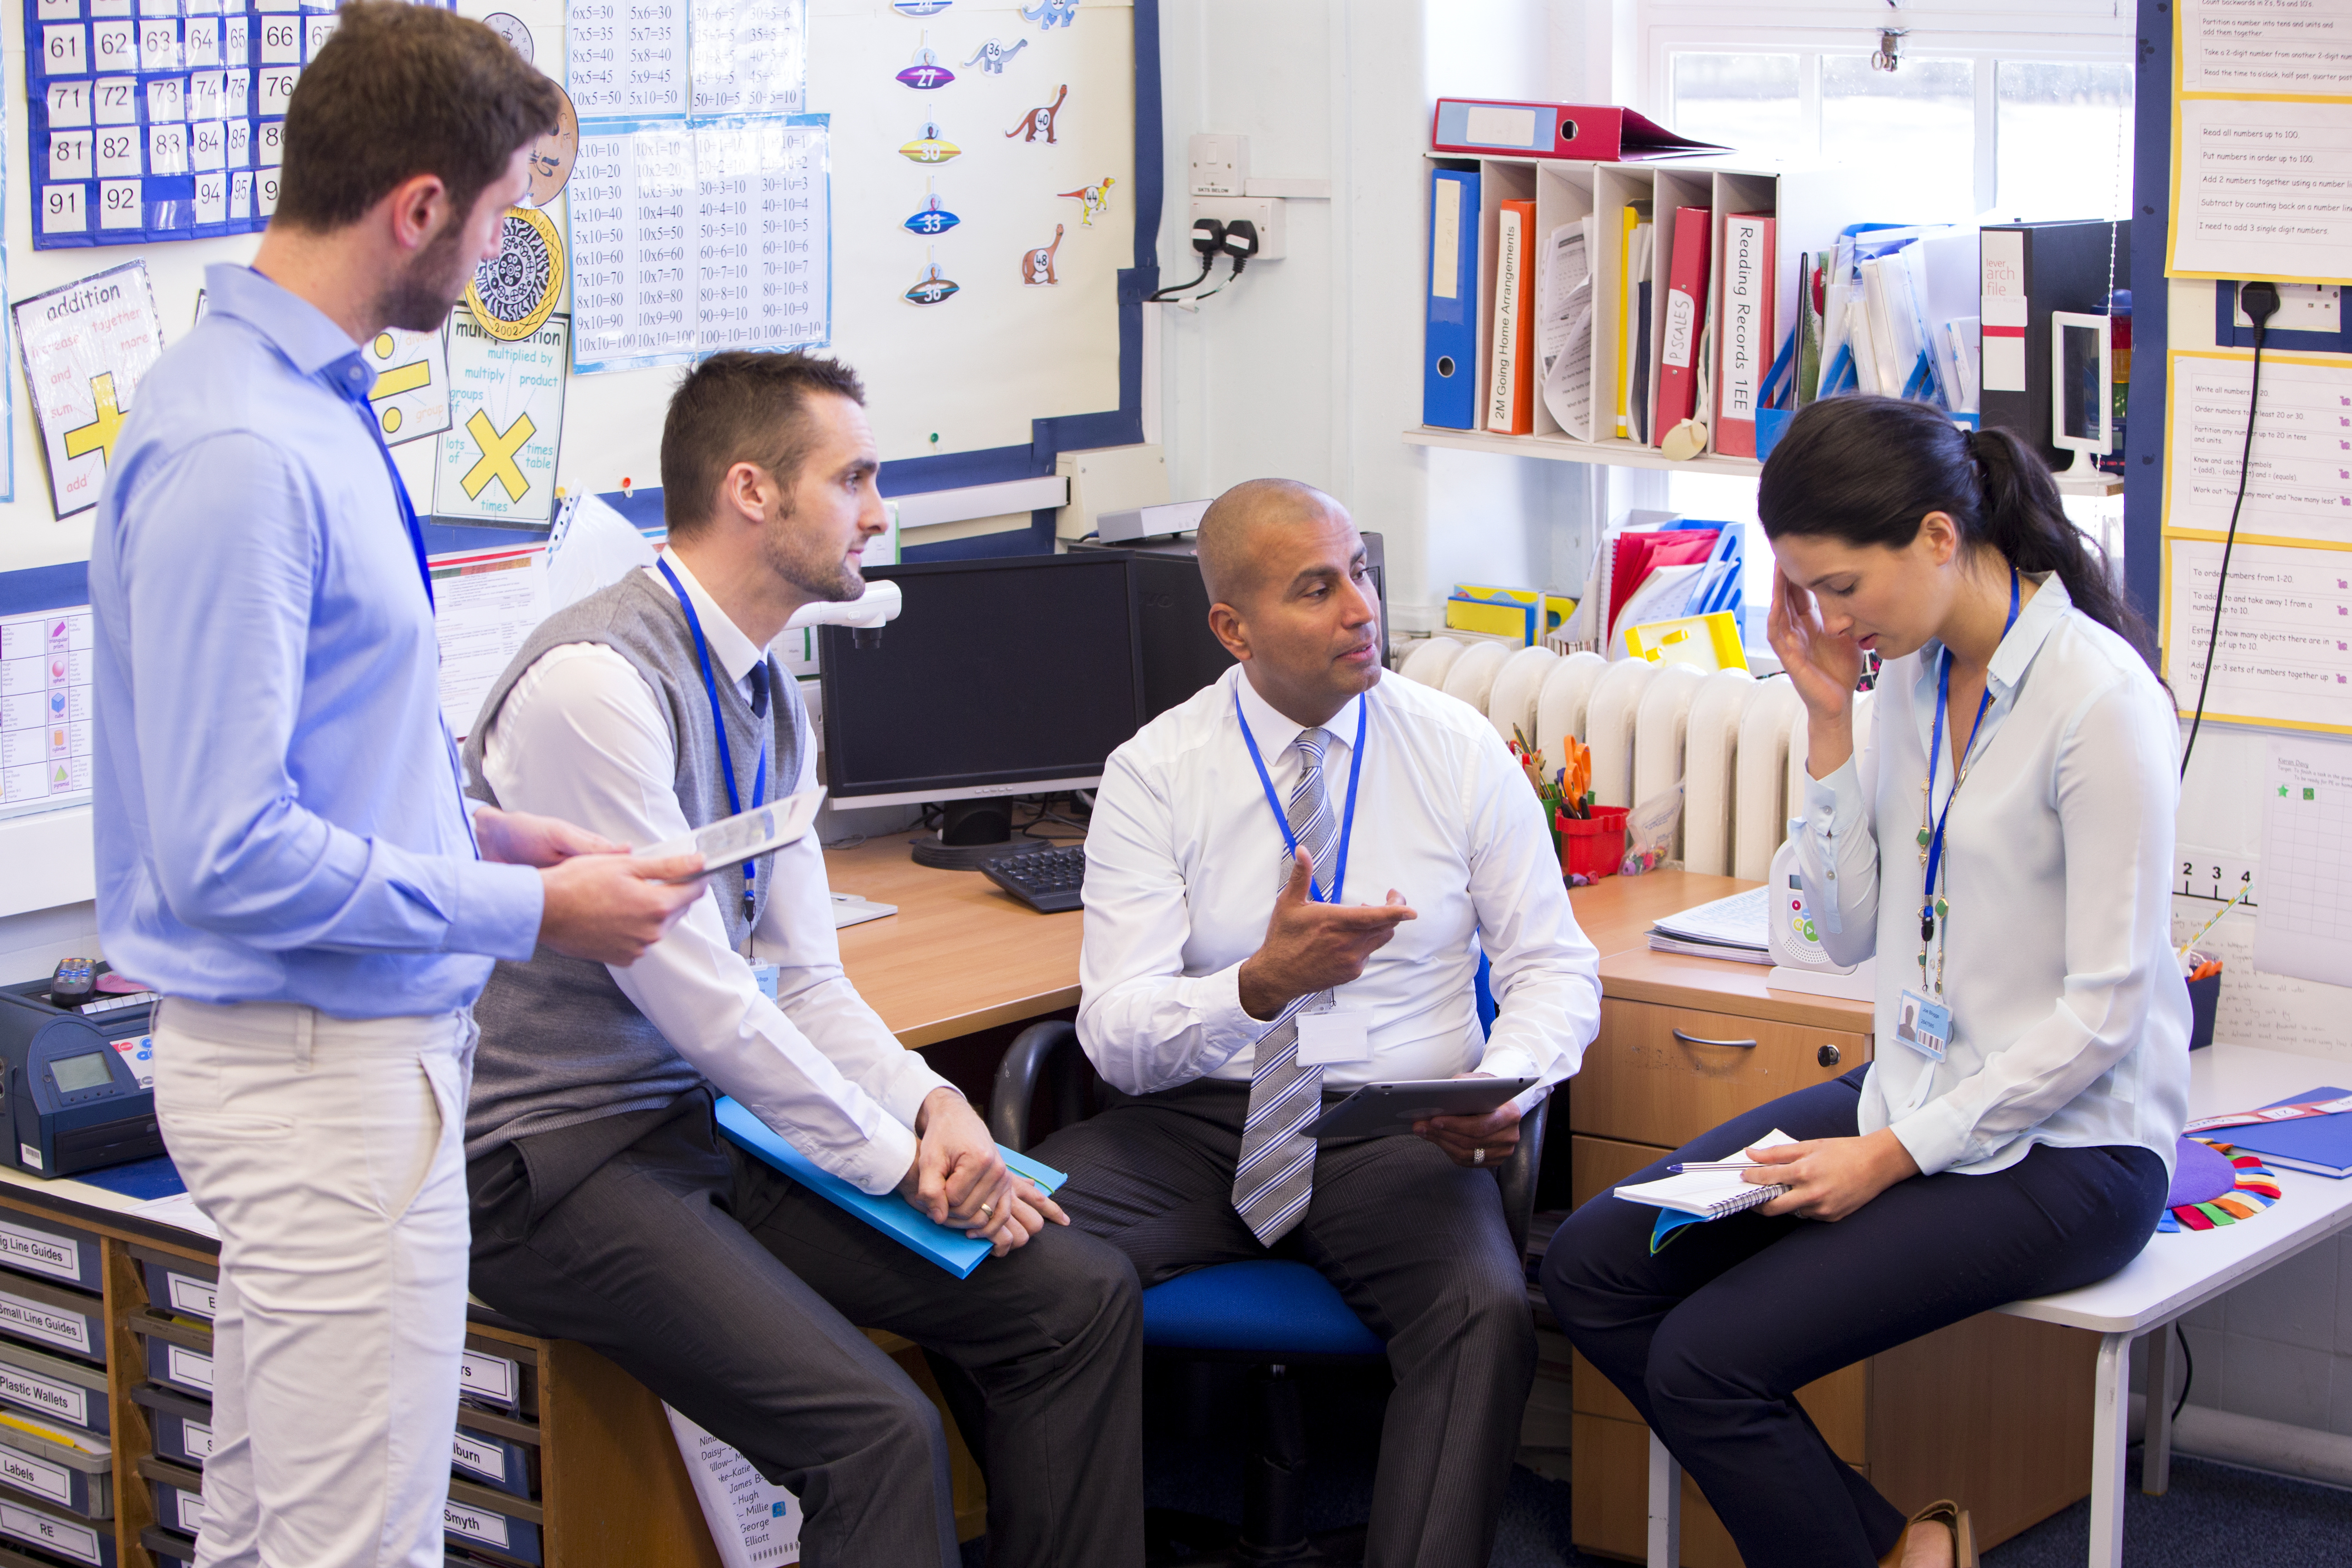 Teachers support a stressed colleague in the staffroom.